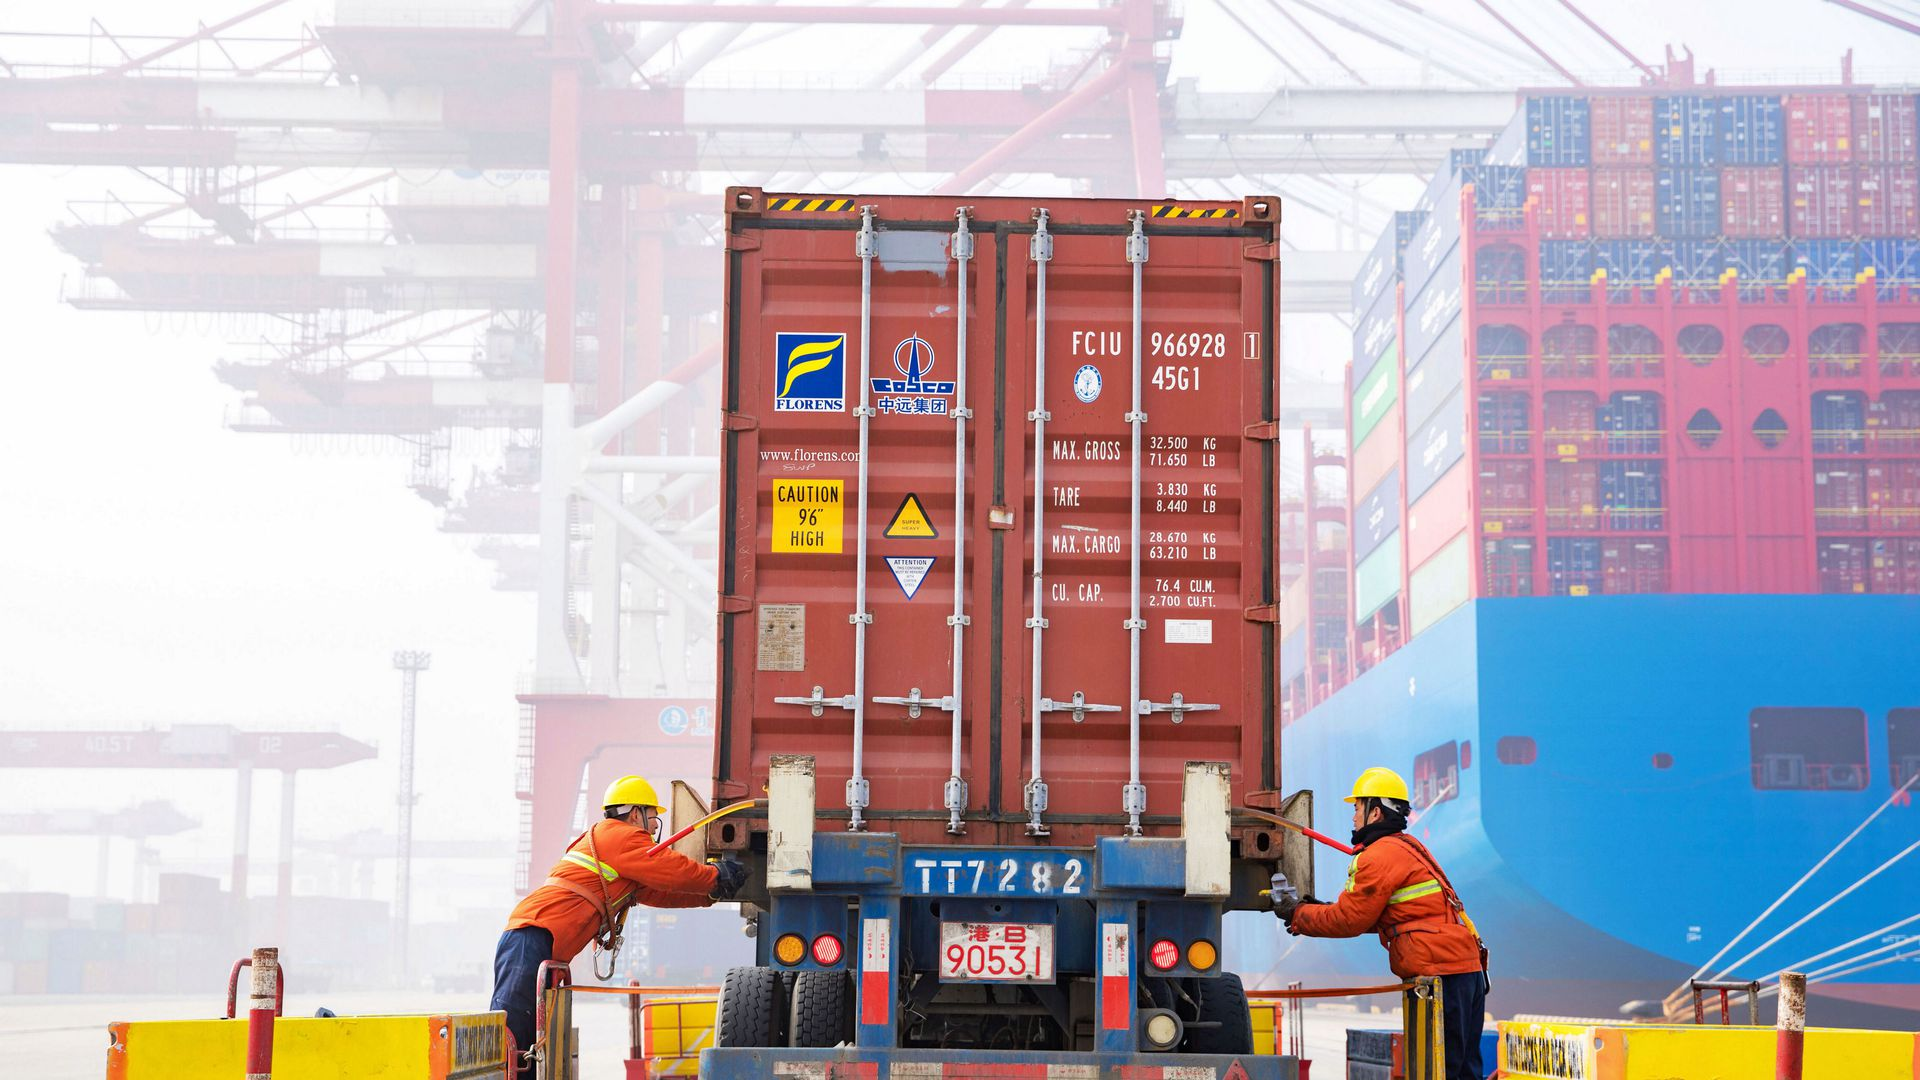 Workers check a shipping container on a truck at Qingdao Port on January 14, 2019 in Qingdao, Shandong Province of China